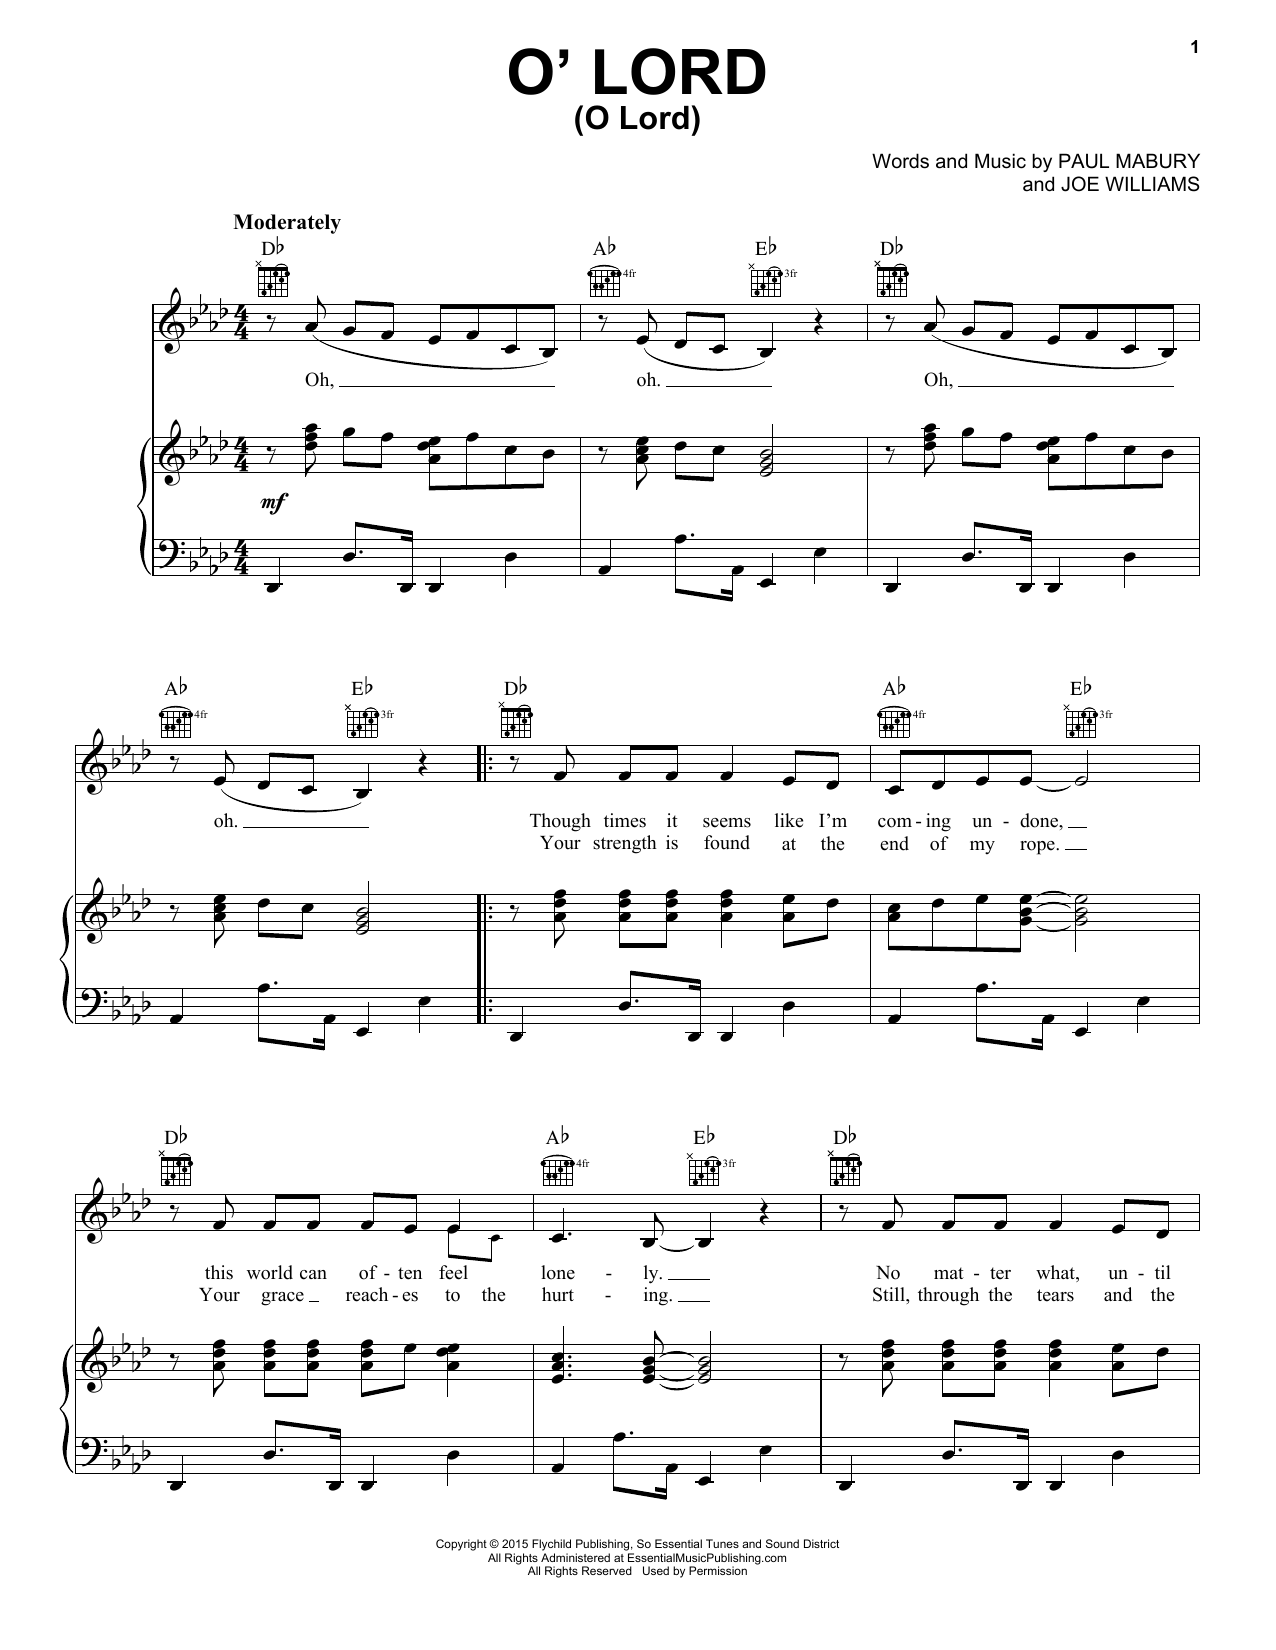 Lauren Daigle O' Lord sheet music notes and chords